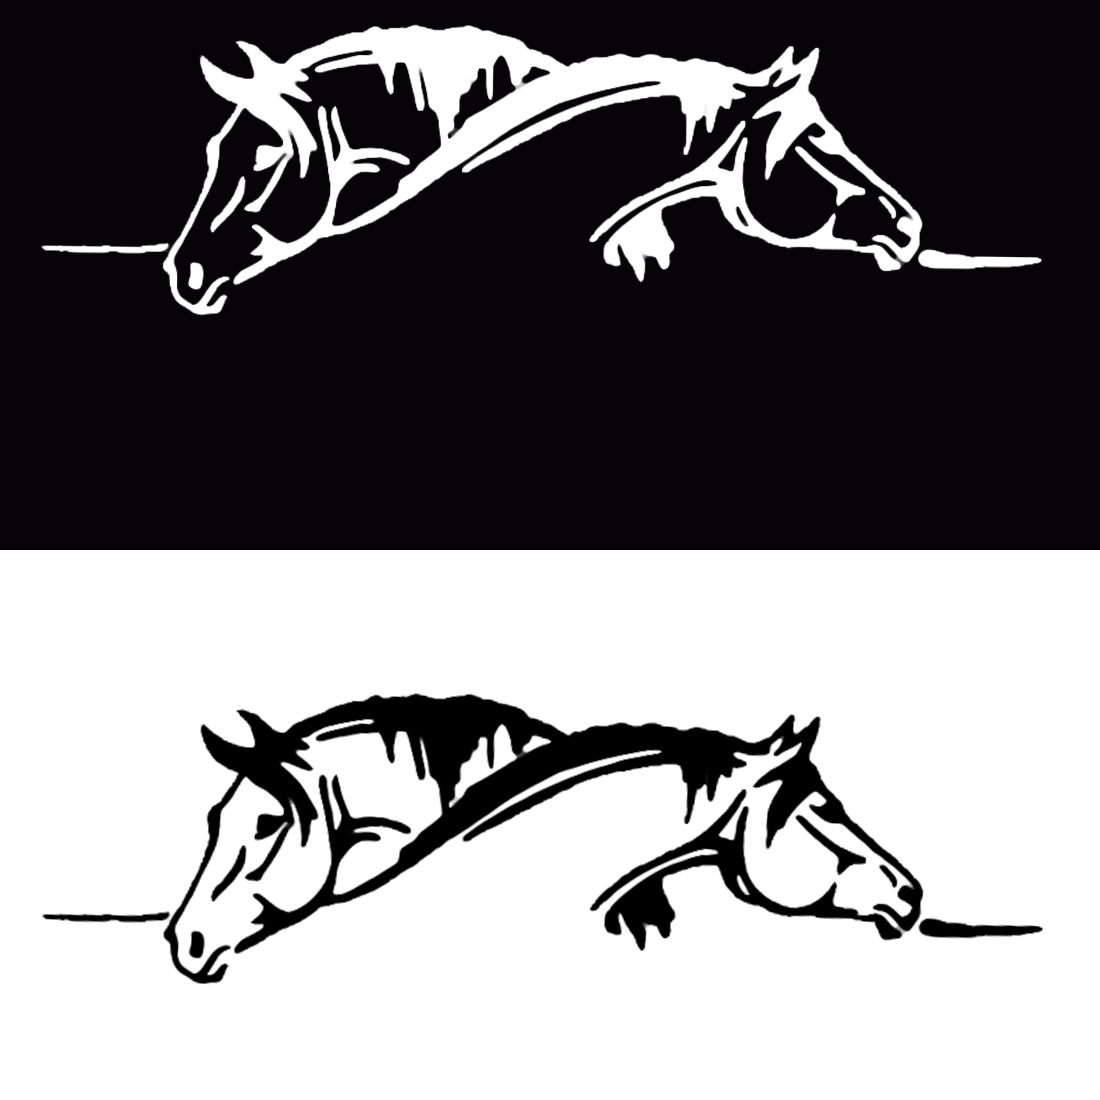 Dewtreetali Creative Two Horses Graphical Car Sticker And Decal Funny Animal Car Styling Black/White super offer high quality maserati granturismo carbon spoiler